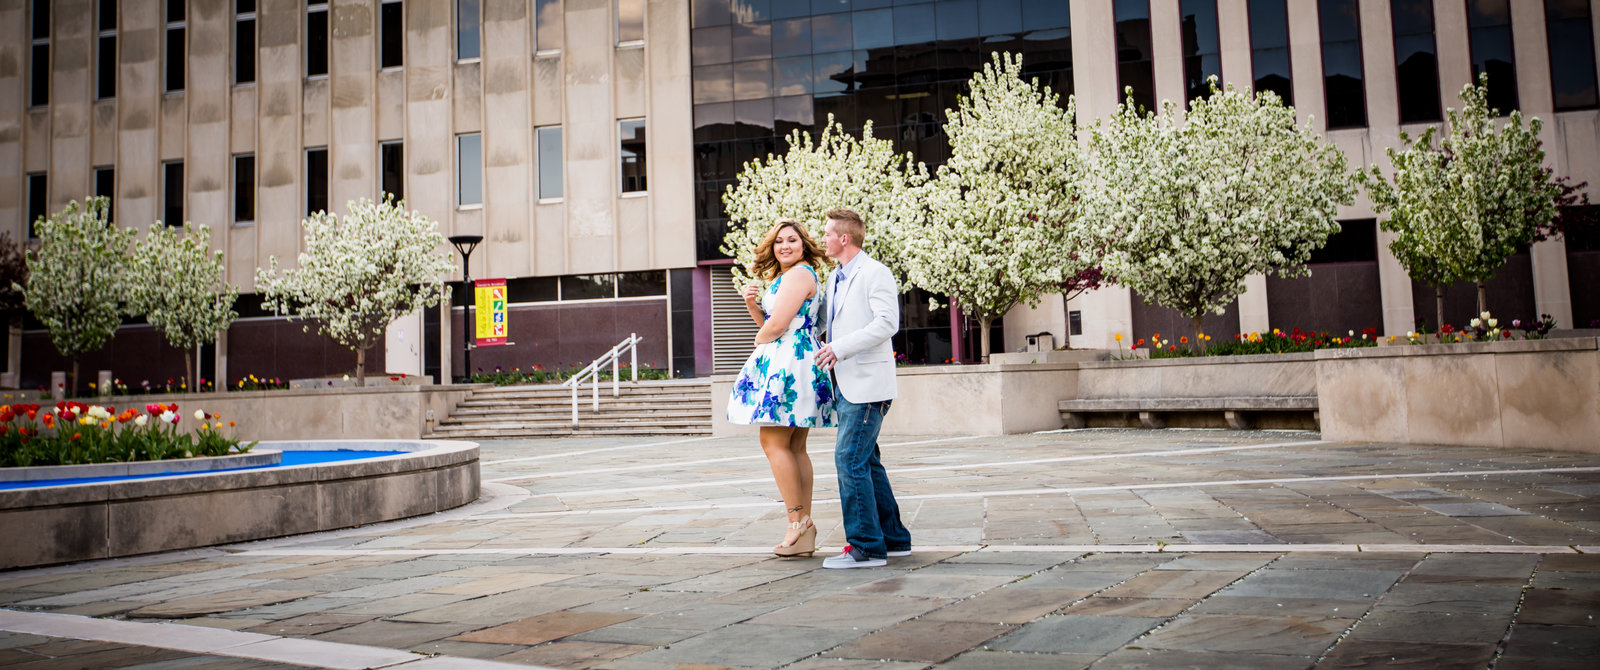 Bree&AndyEngaged|April16th2016-40